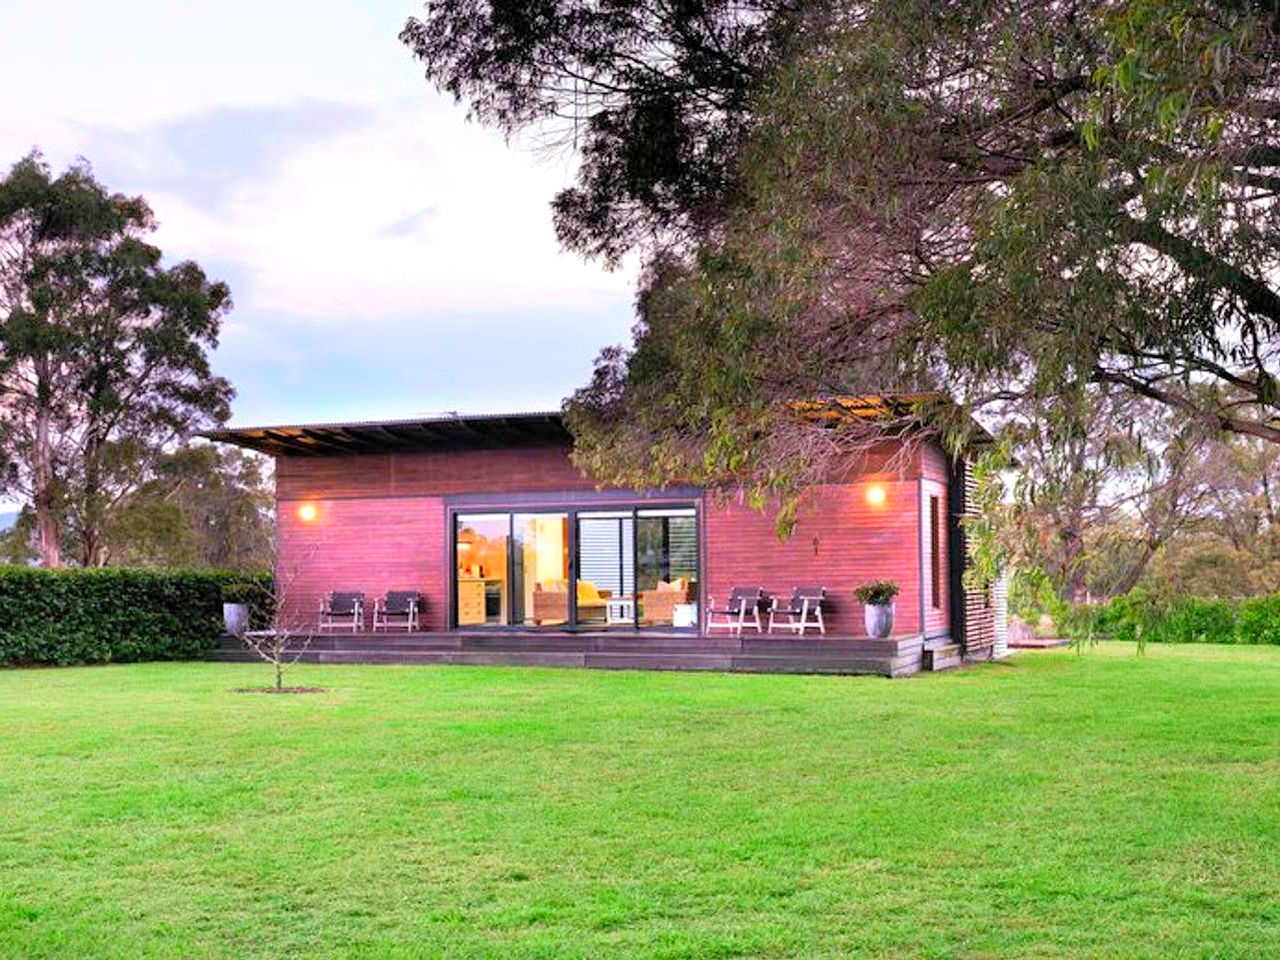 This charming accommodation is located on a farm stay in NSW, so guests can relax and also experience farm-life